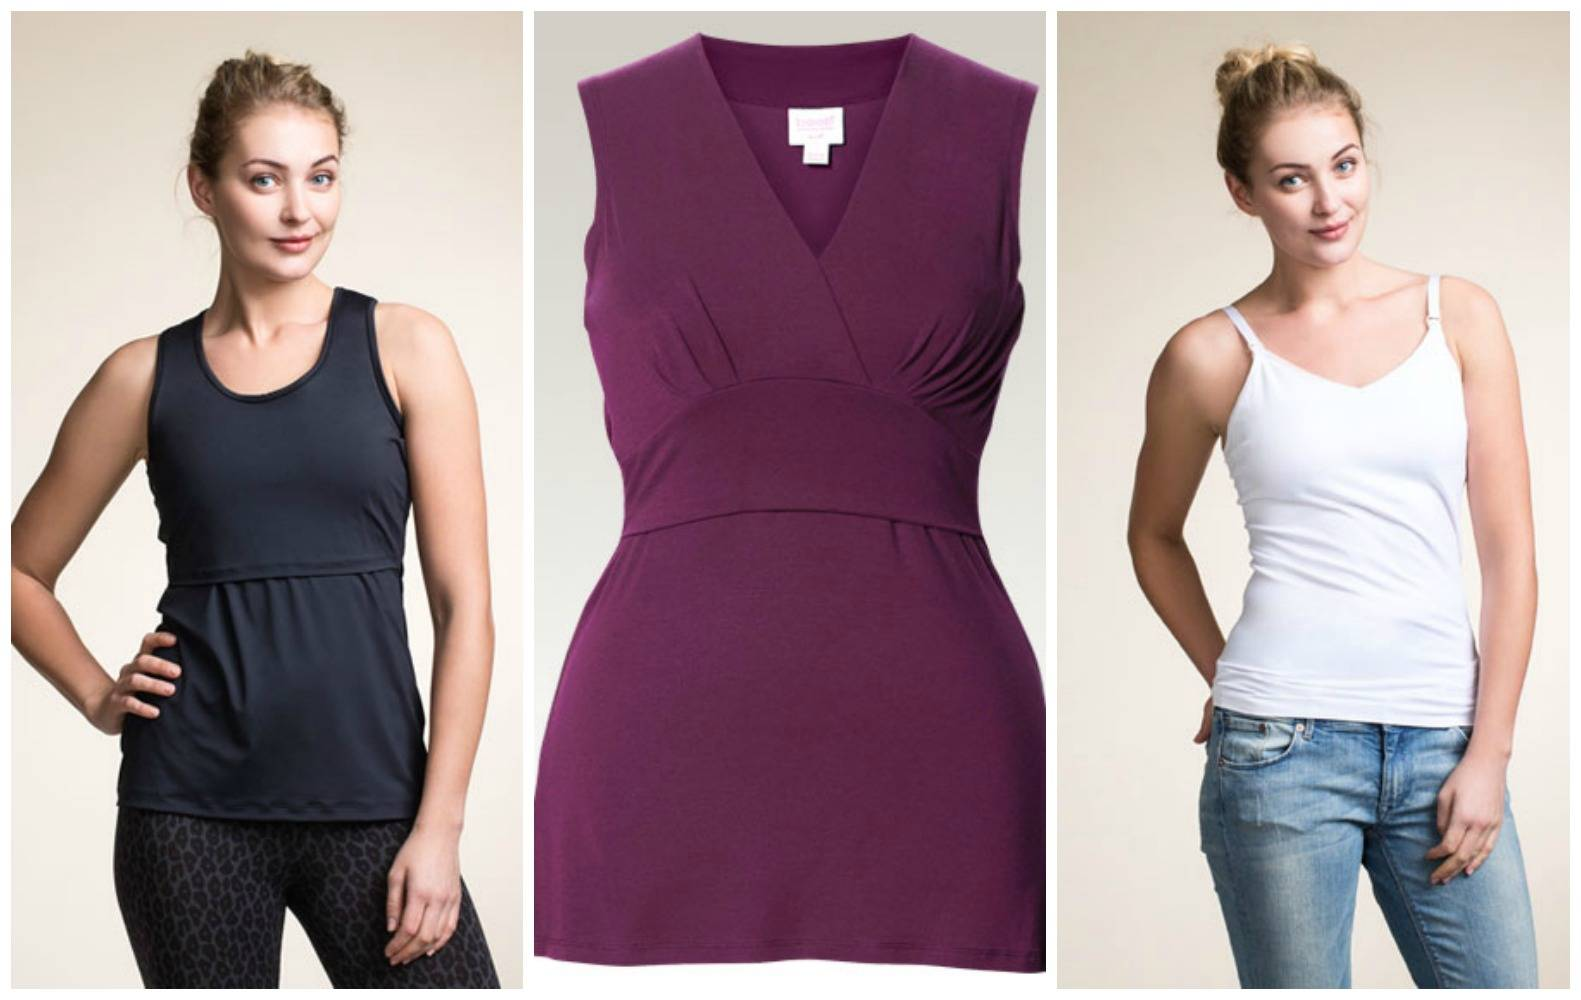 Maternity Style Tips - www.lovefrommim.com Pregnancy Fashion Maternity Wear Pregnancy Clothes Tips Maternity Fashion Tips Boob Nursing Singlet Top